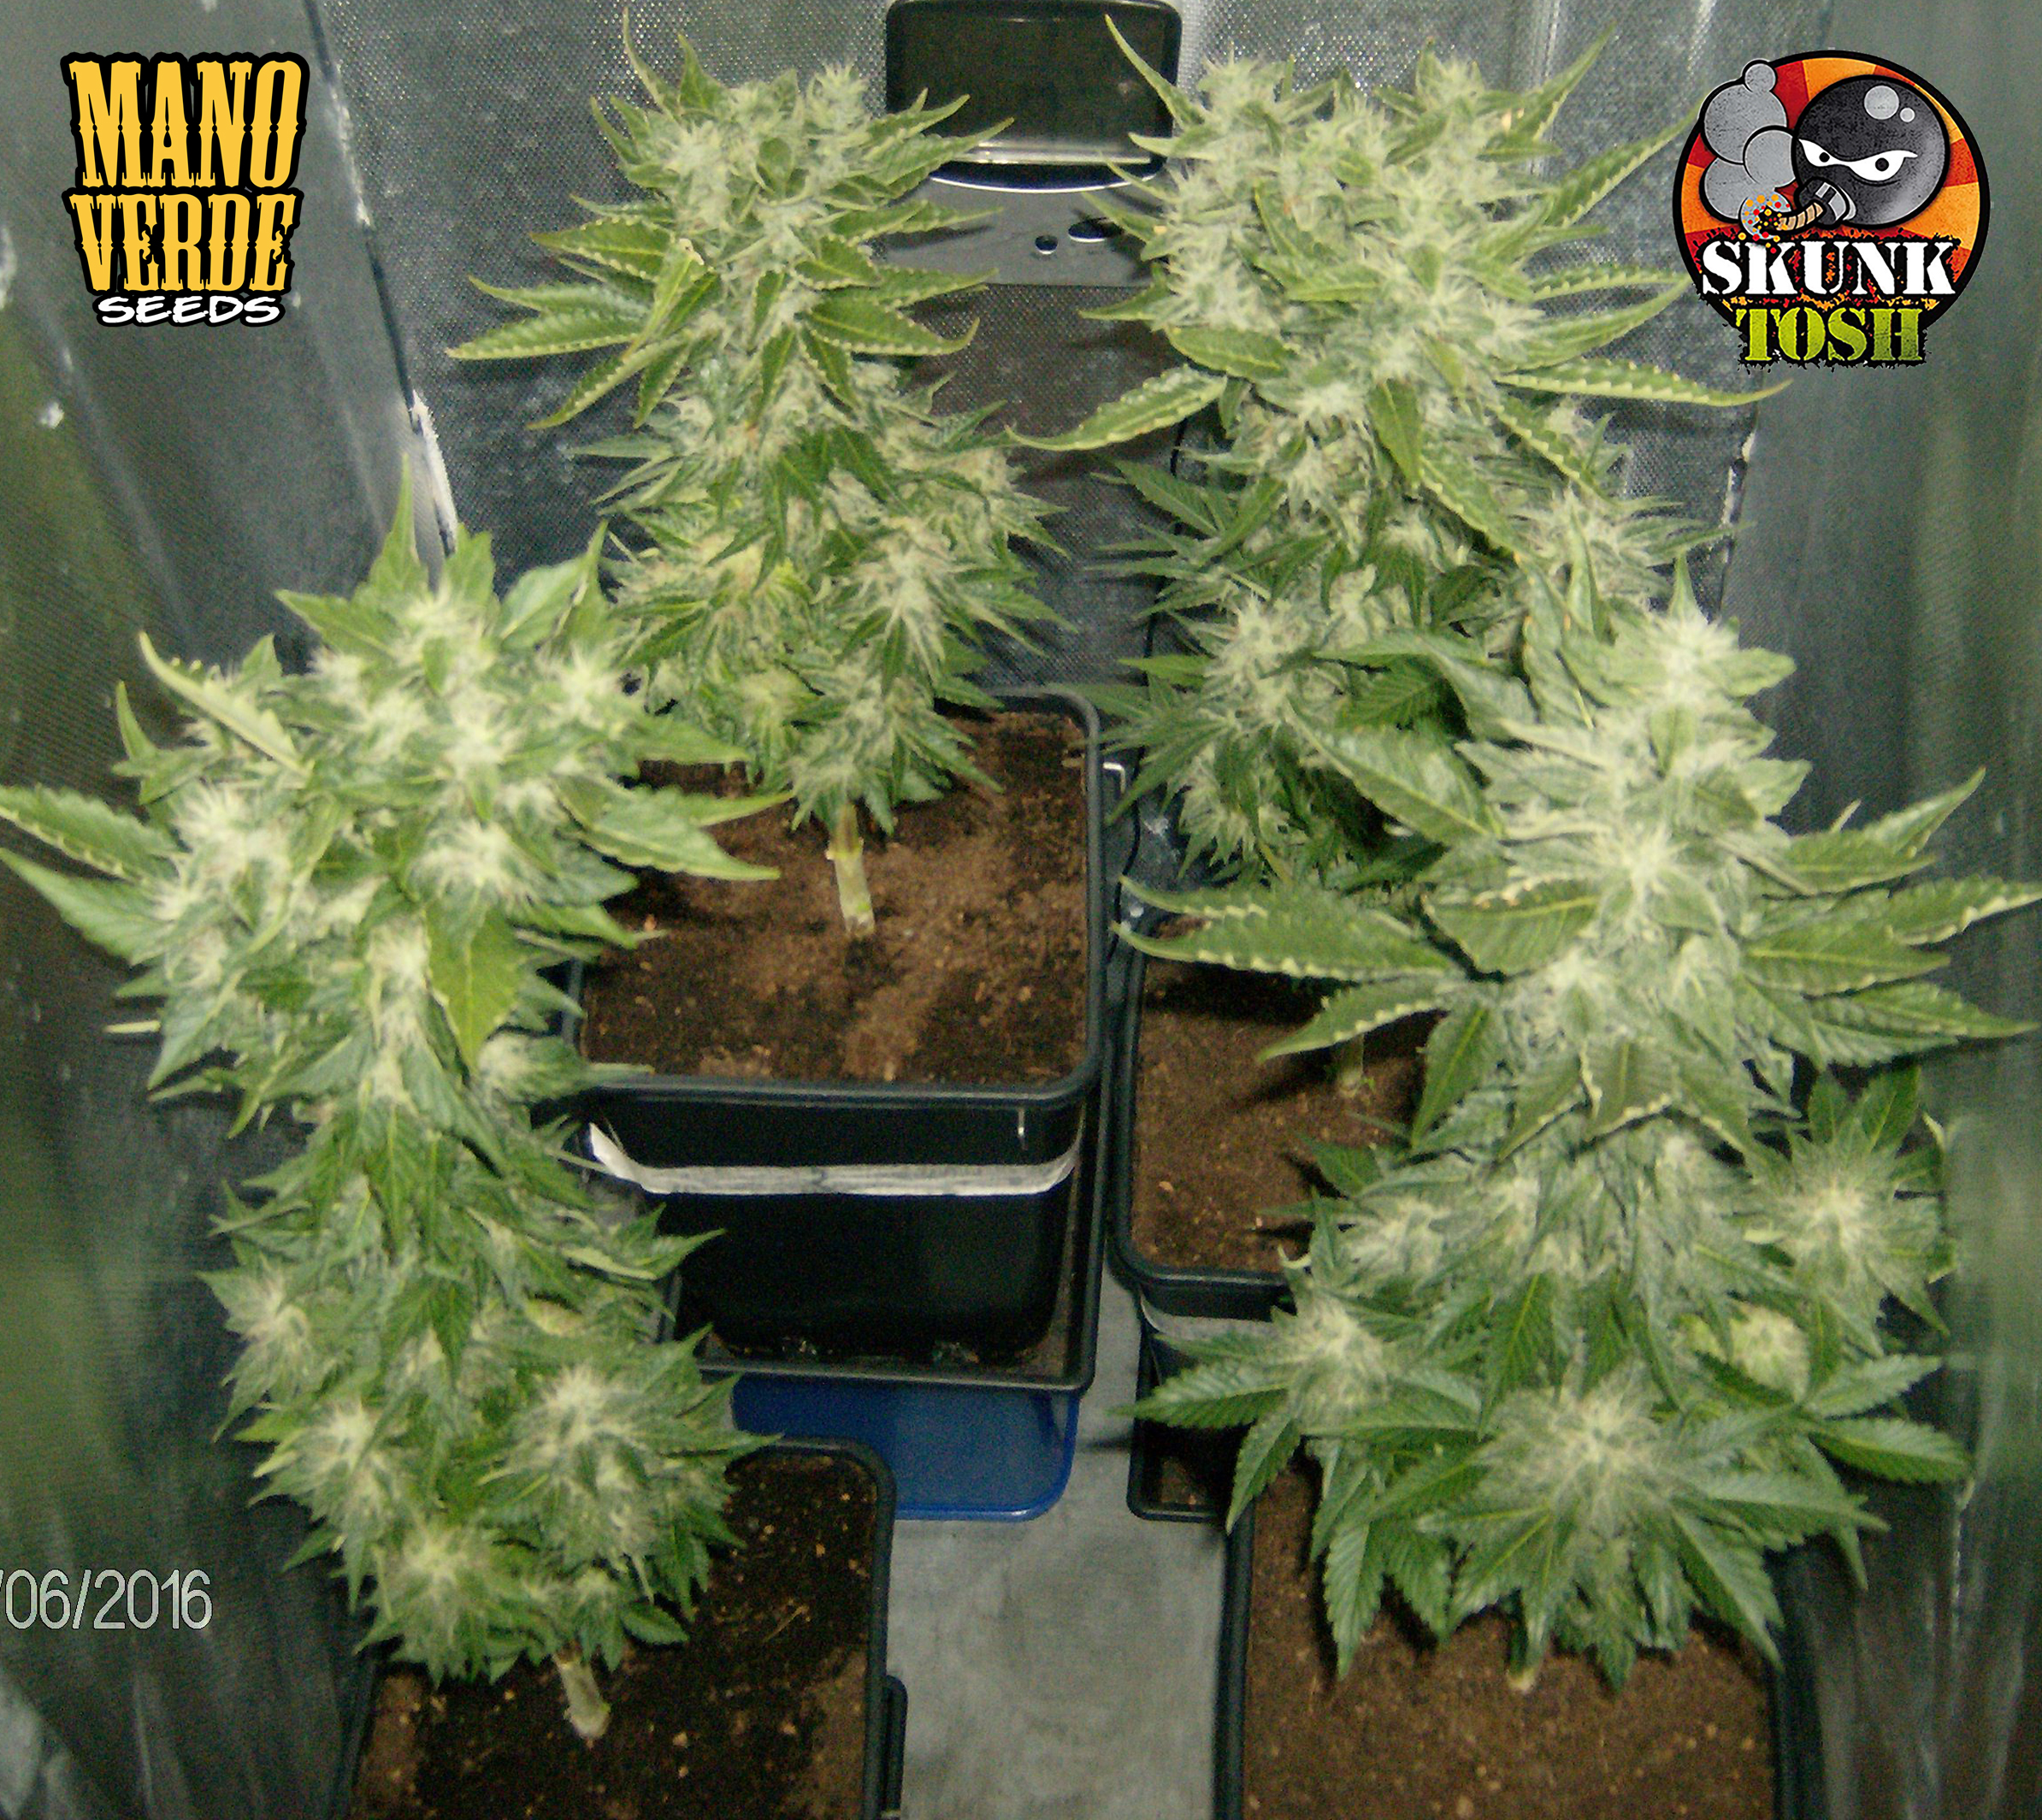 SKUNK HAZE Manoverde Seeds 65C-58F - 230